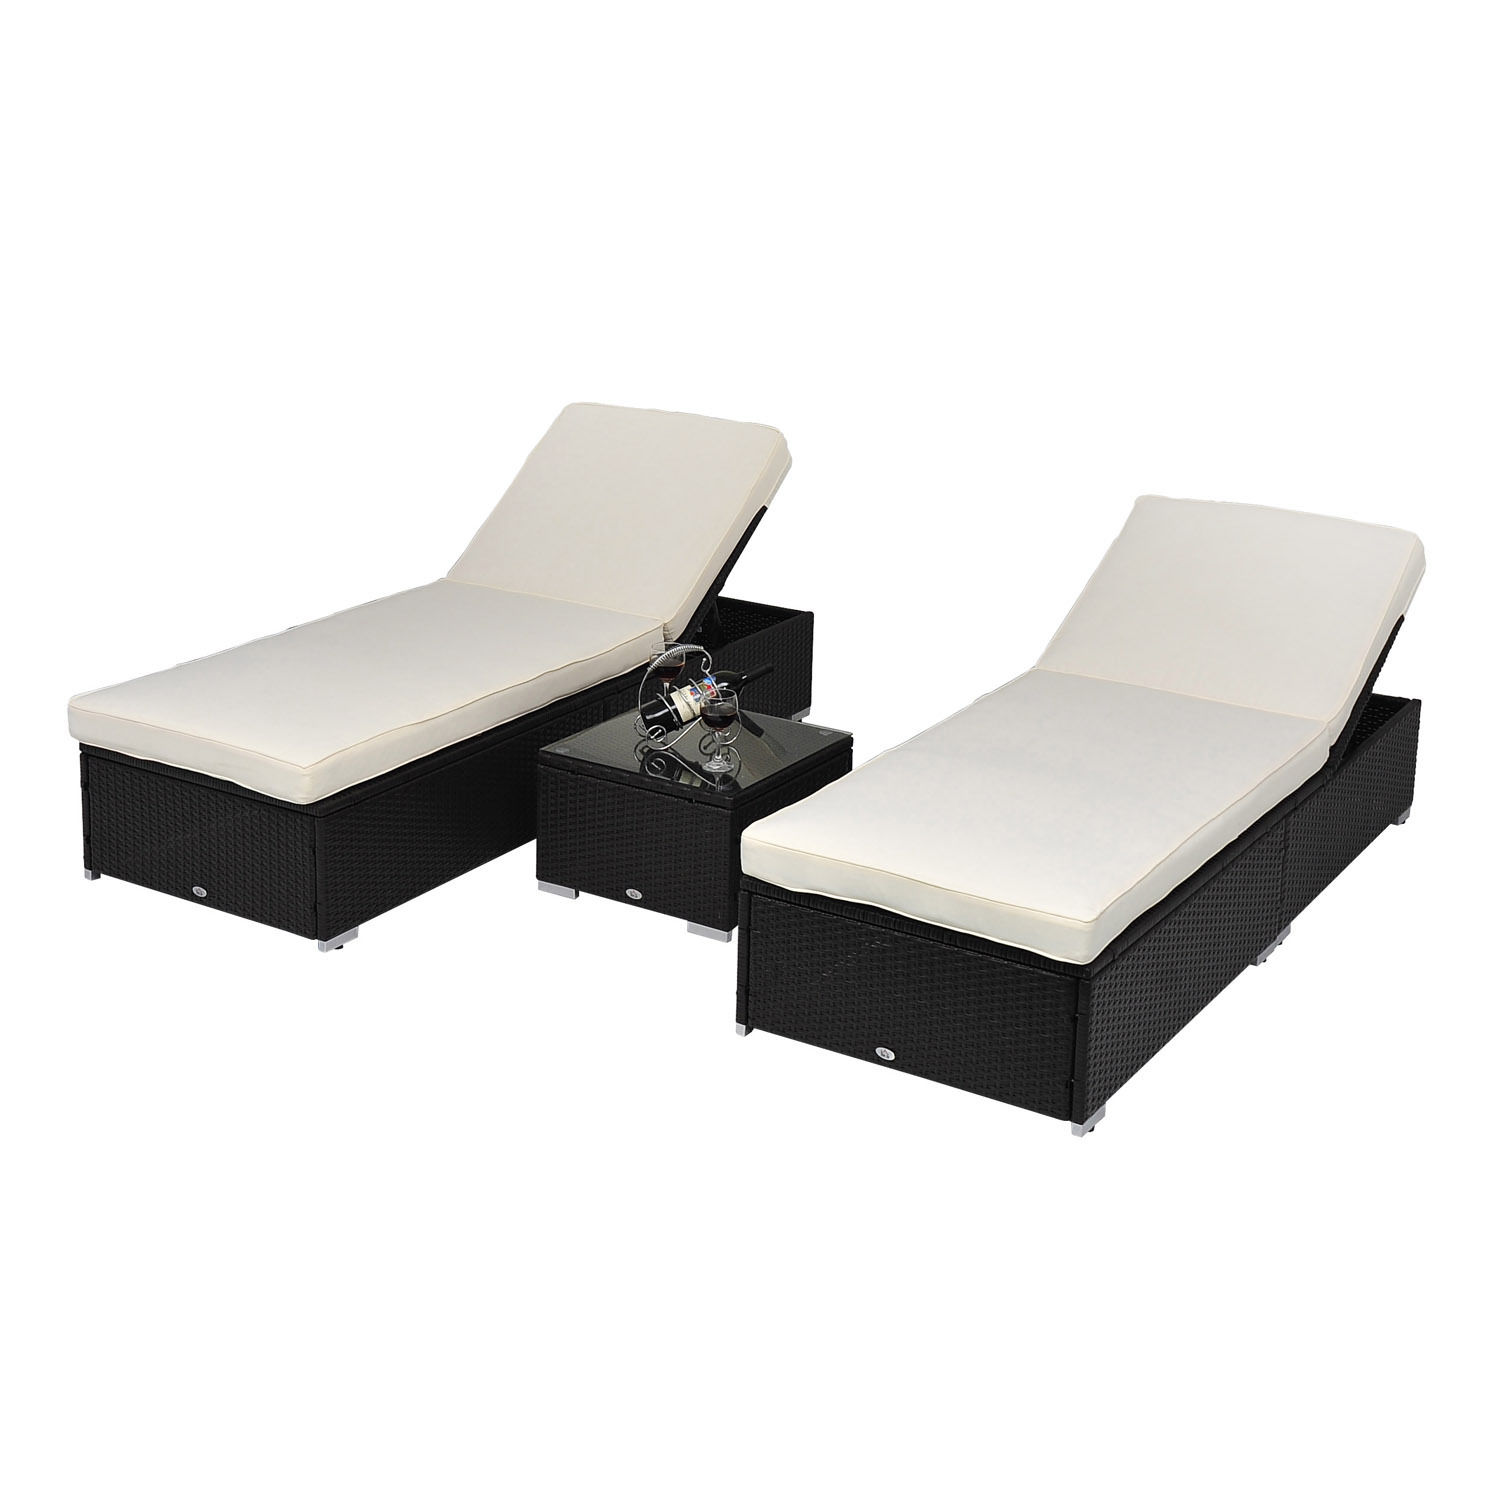 wicker chaise lounge chairs outdoor chair covers hire bristol 3 pcs rattan sofa couch patio